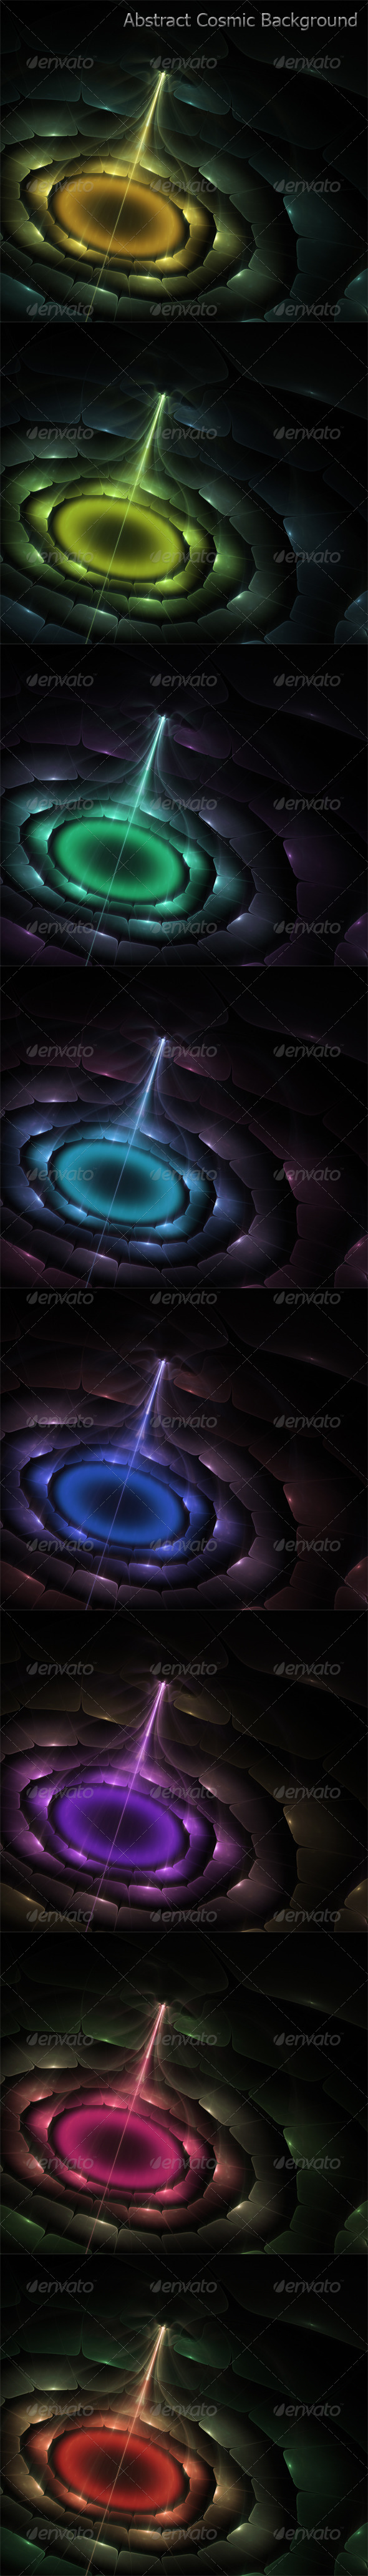 Abstract Cosmic Background - Abstract Backgrounds